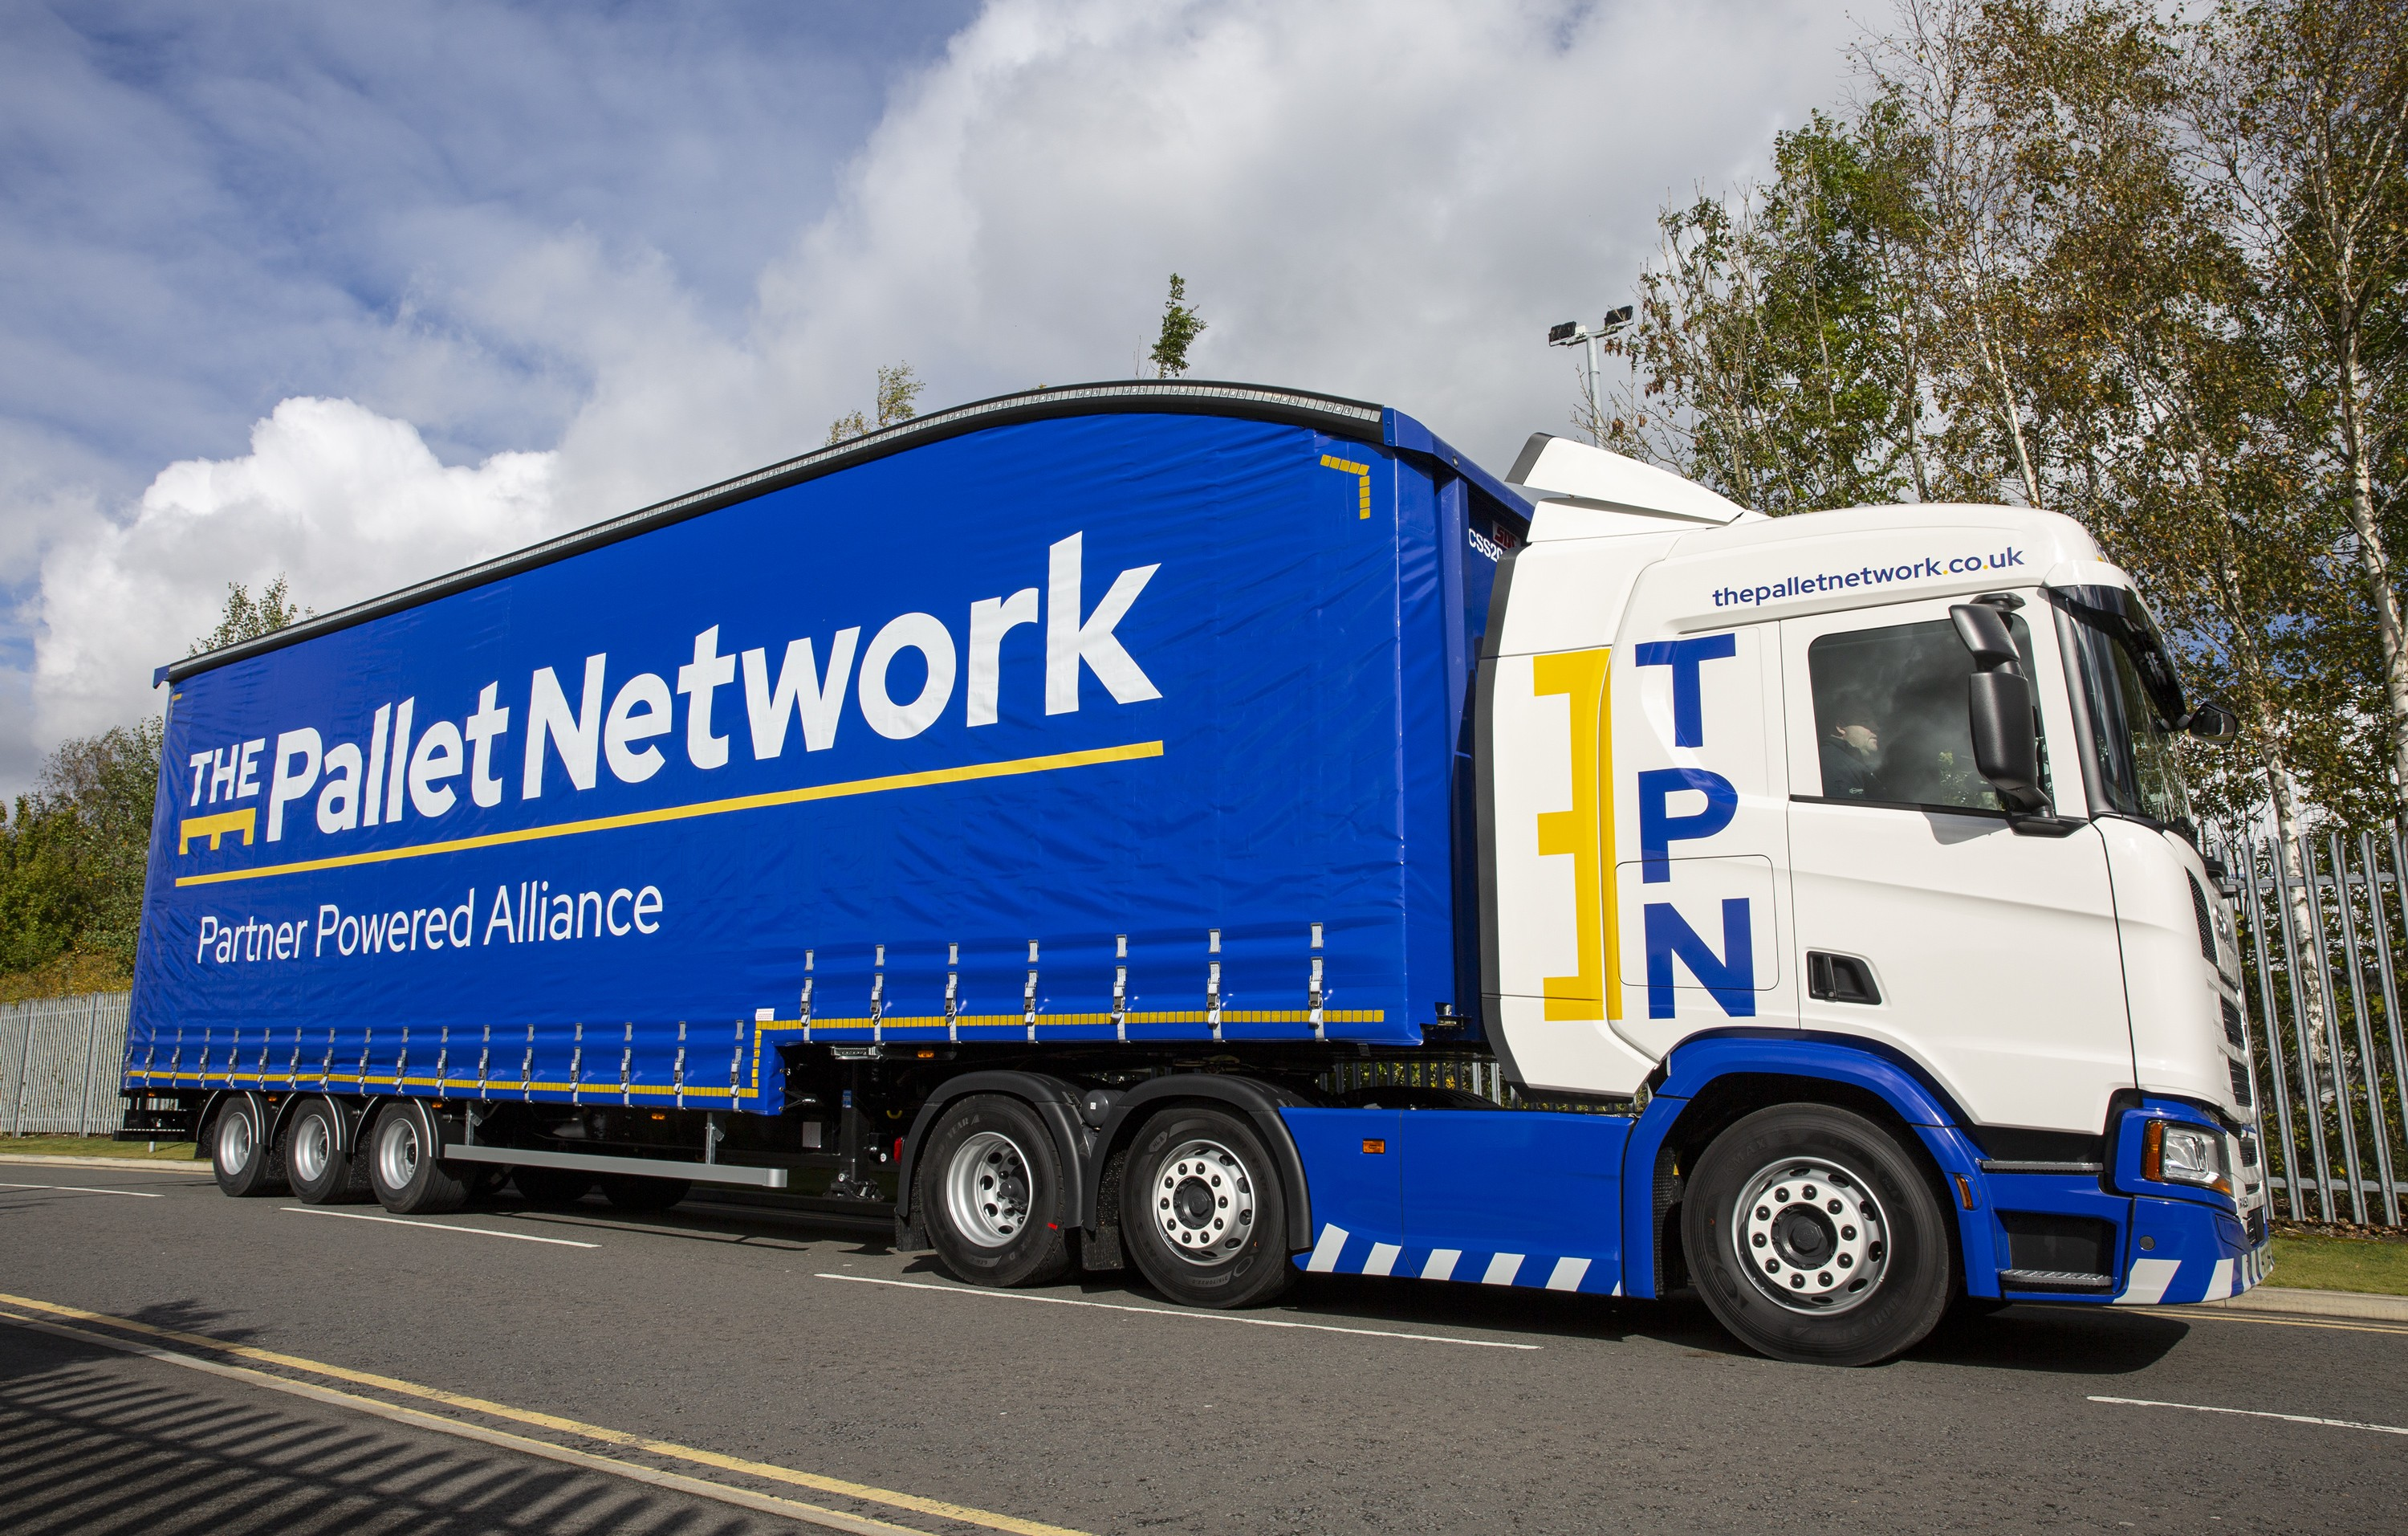 TPN pallet recycling scheme doubles monthly input